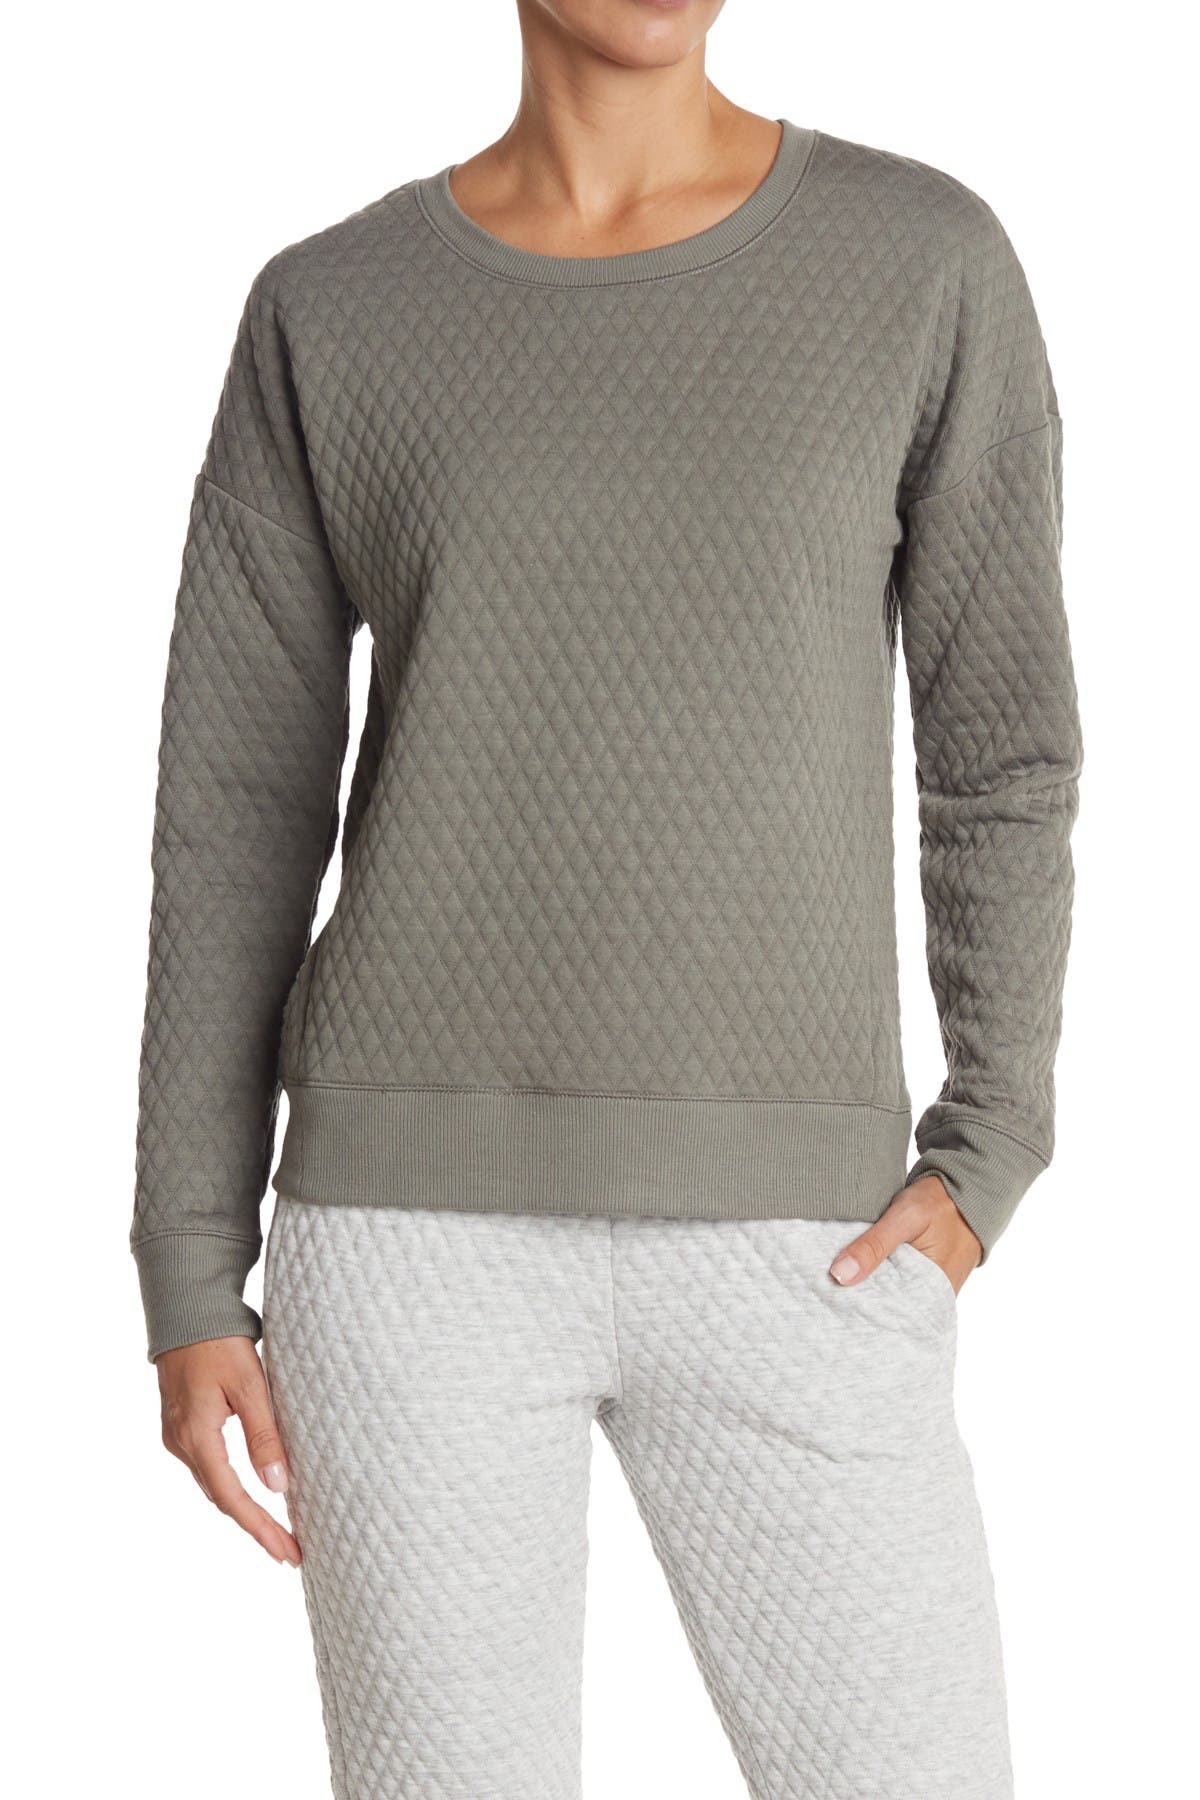 Image of 90 Degree By Reflex Quilted Crew Neck Sweatshirt